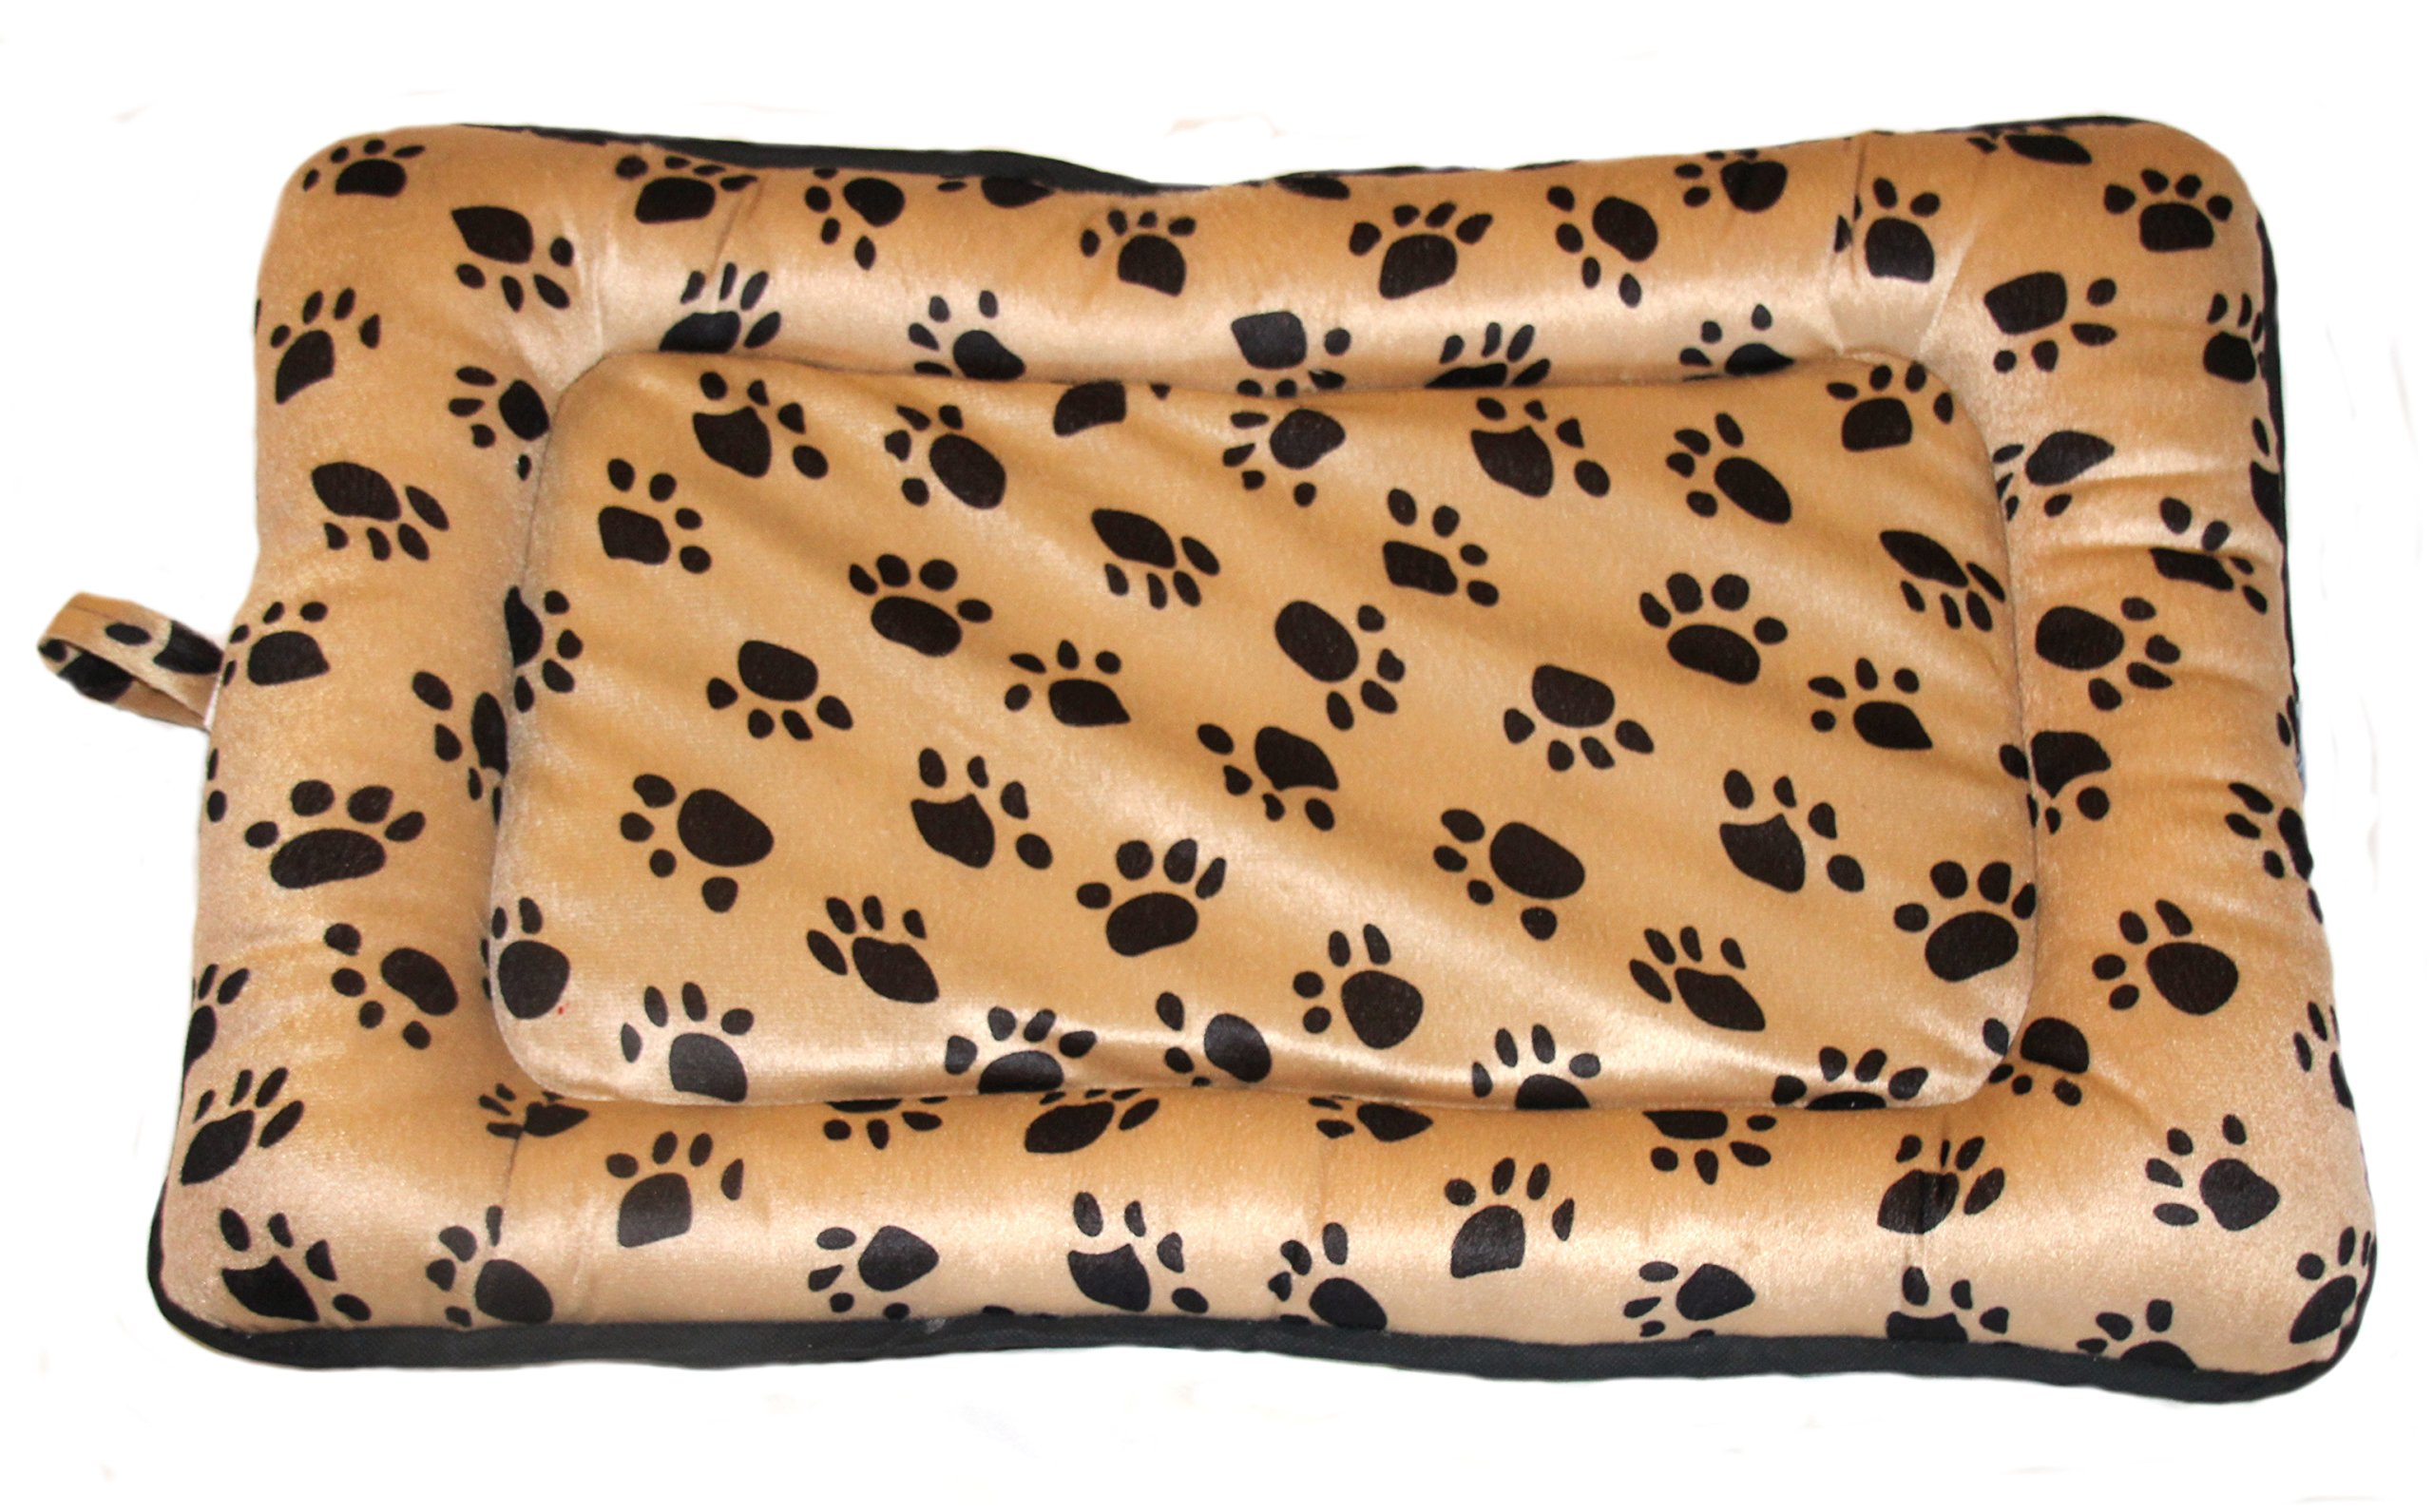 Premiere Brands Pet Bed Crate Pads by Soft Comfortable Top - Tough Water-Resistant Polyester Base for Dogs (Medium)